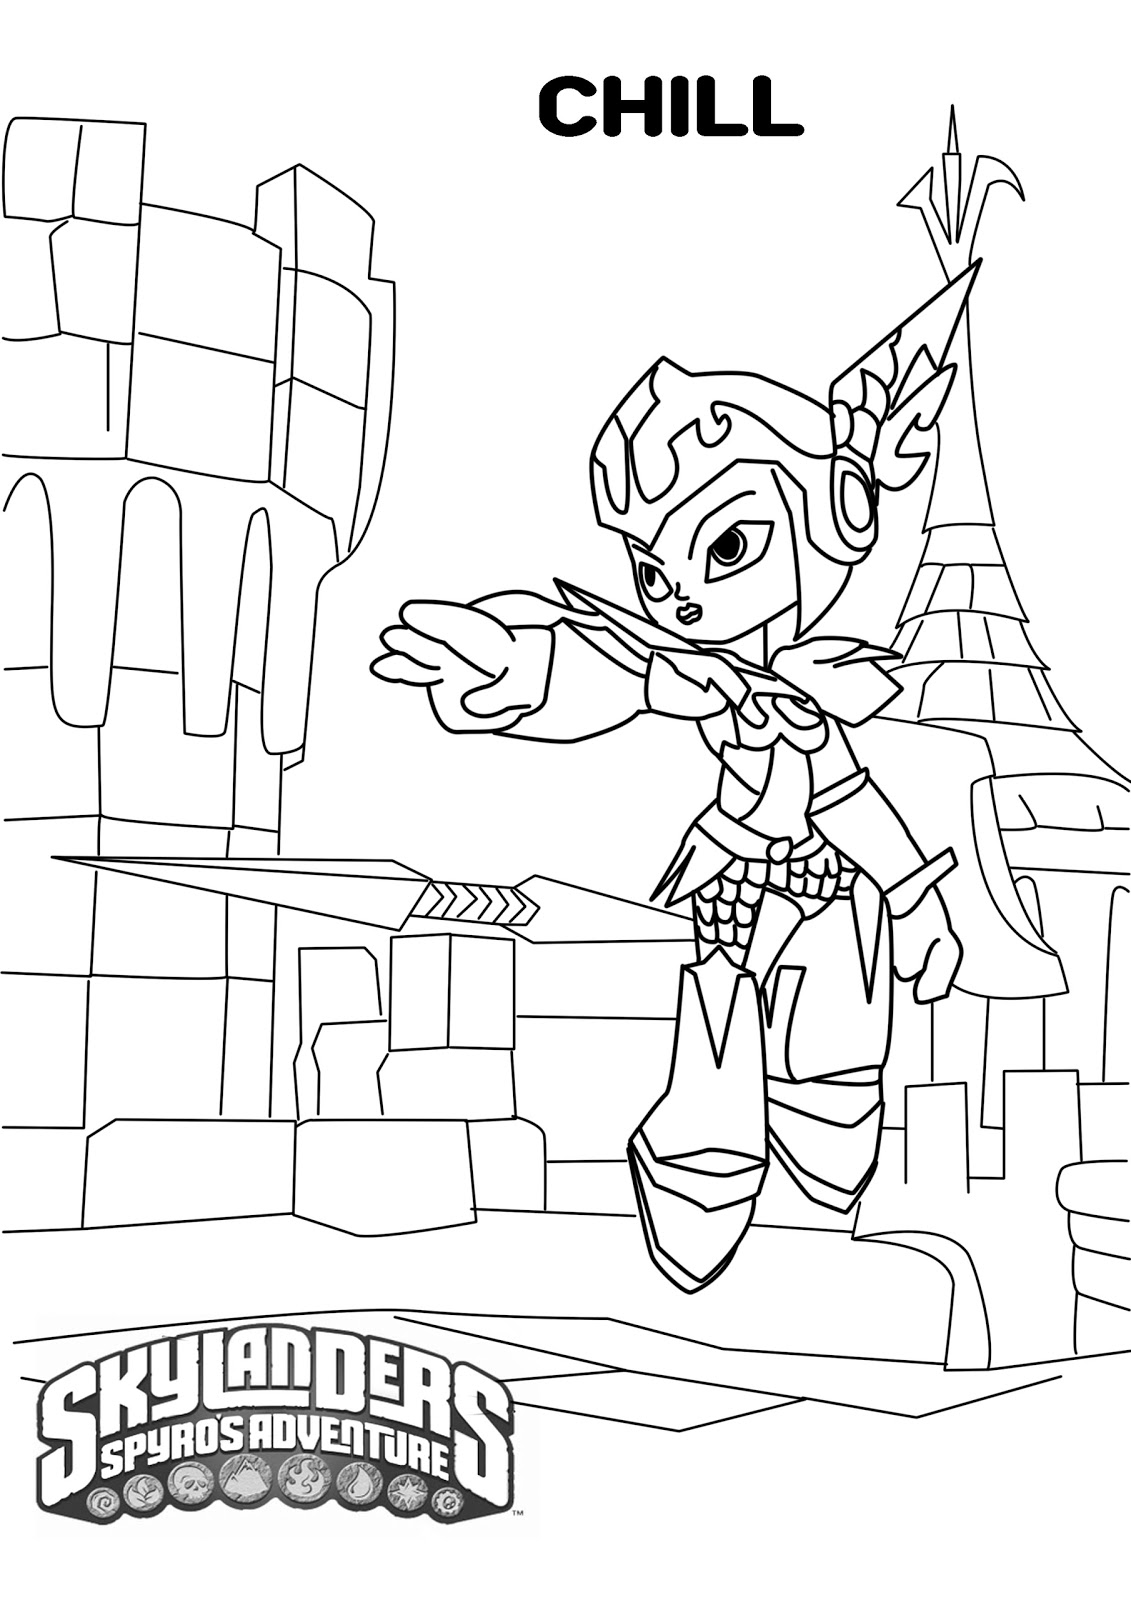 dltk birthday coloring pages - photo#16